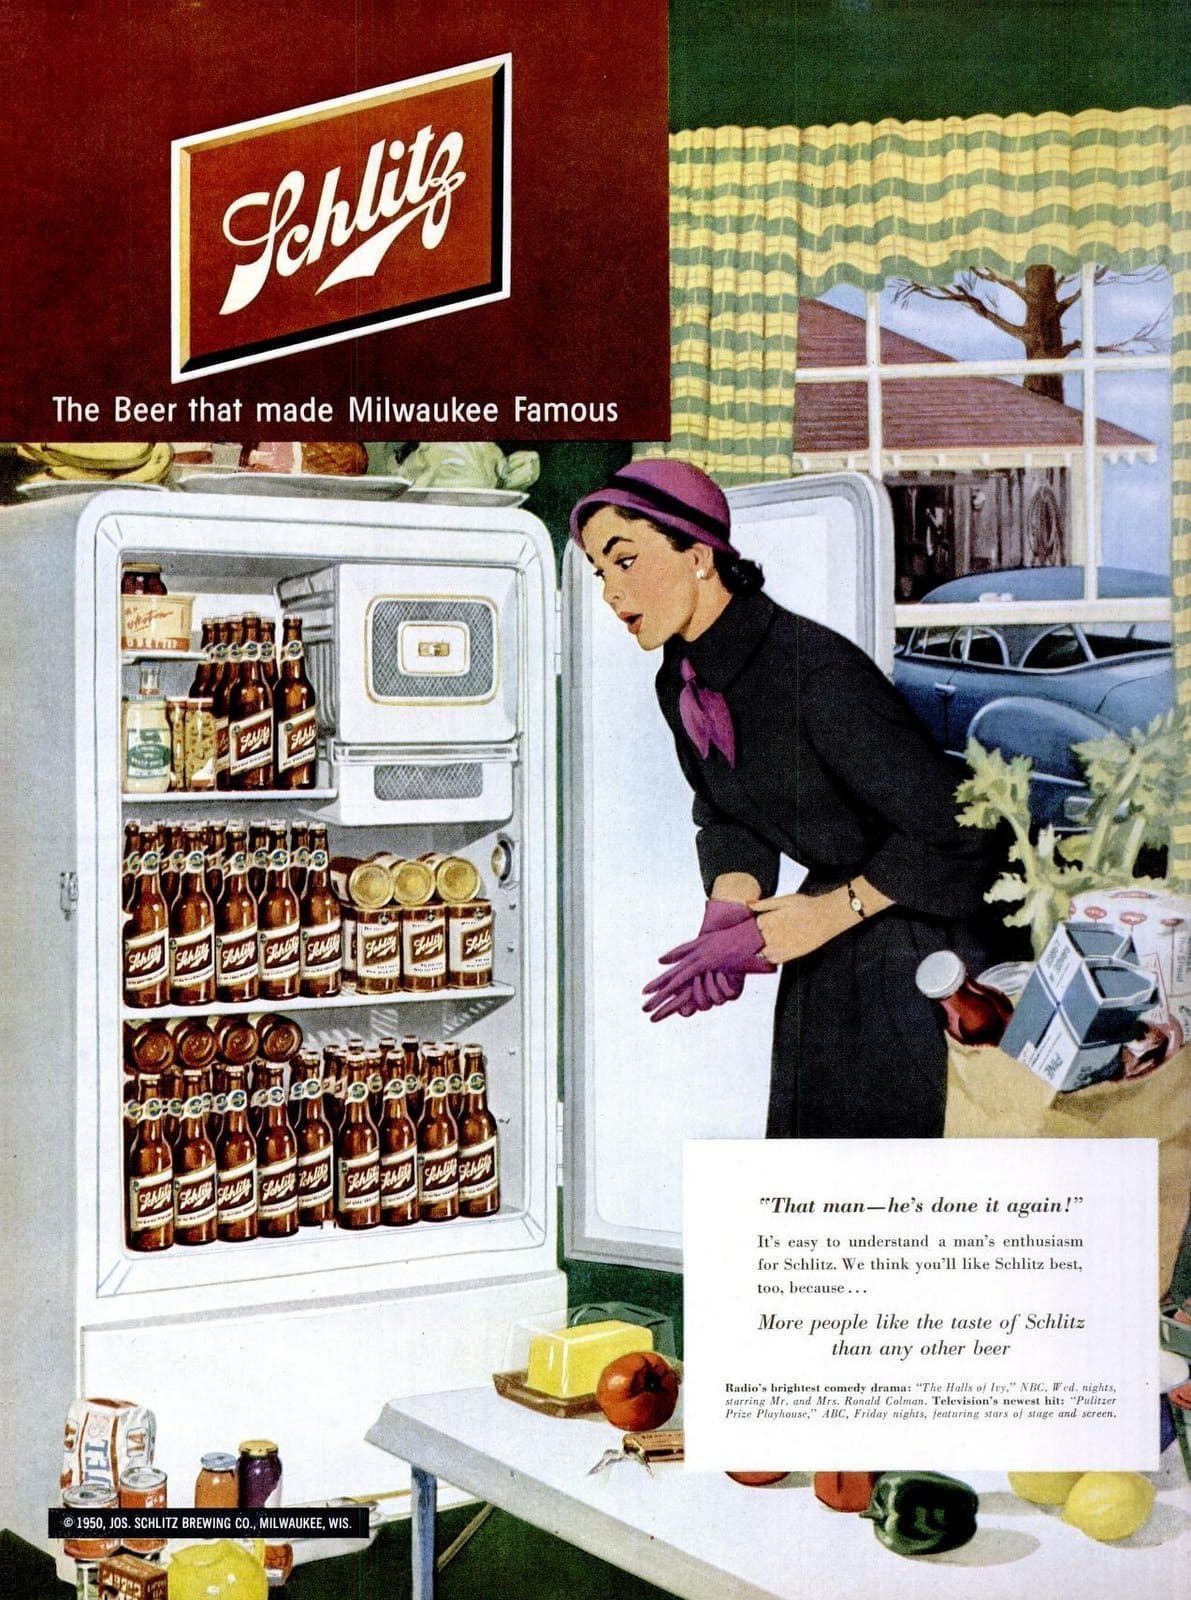 1950s housewife - Refrigerator full of beer